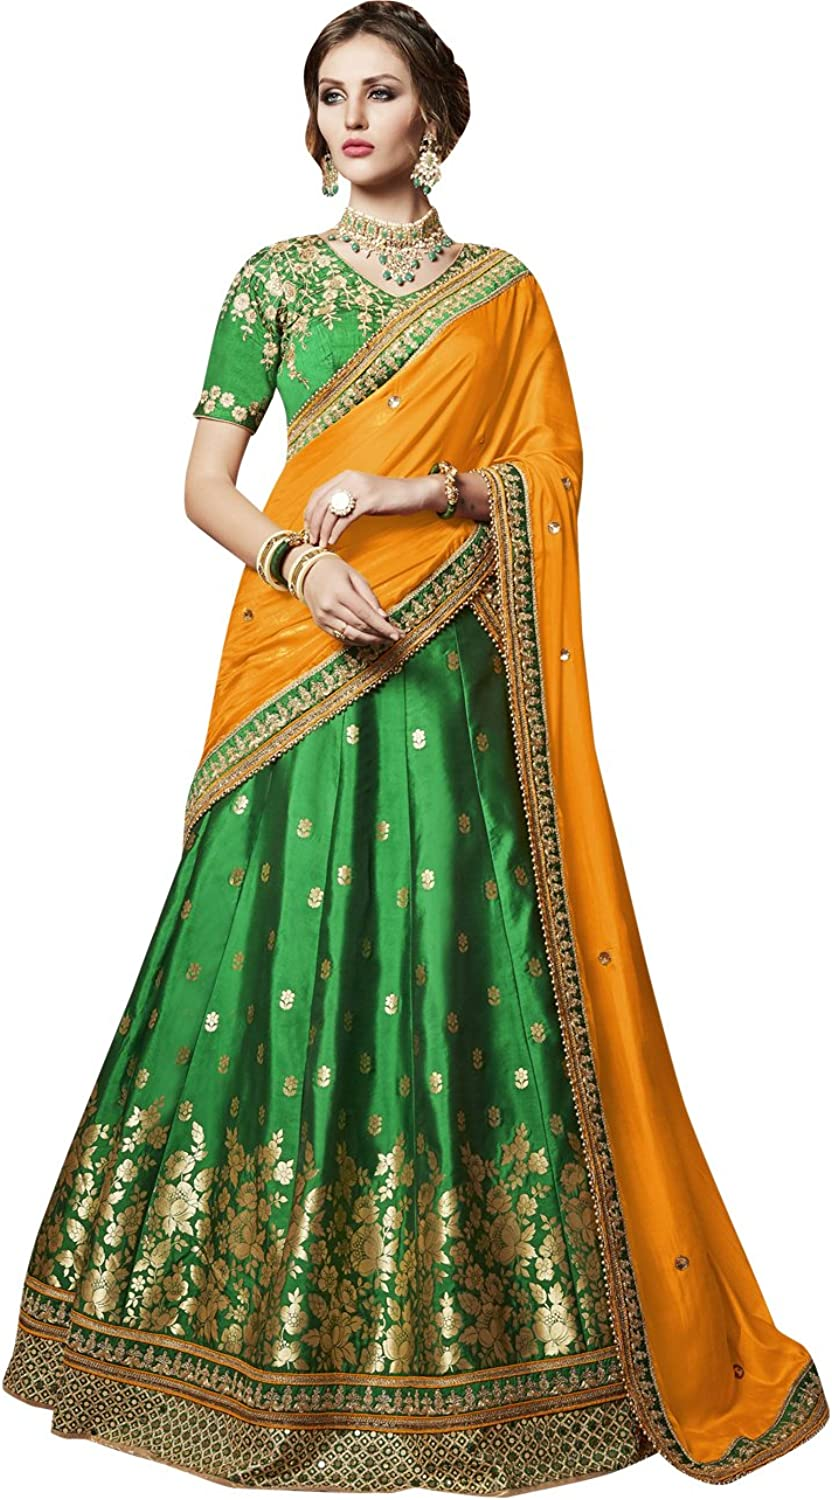 Exclusive Indian Ethnicwear Mustard and Green Coloured Lehenga Saree